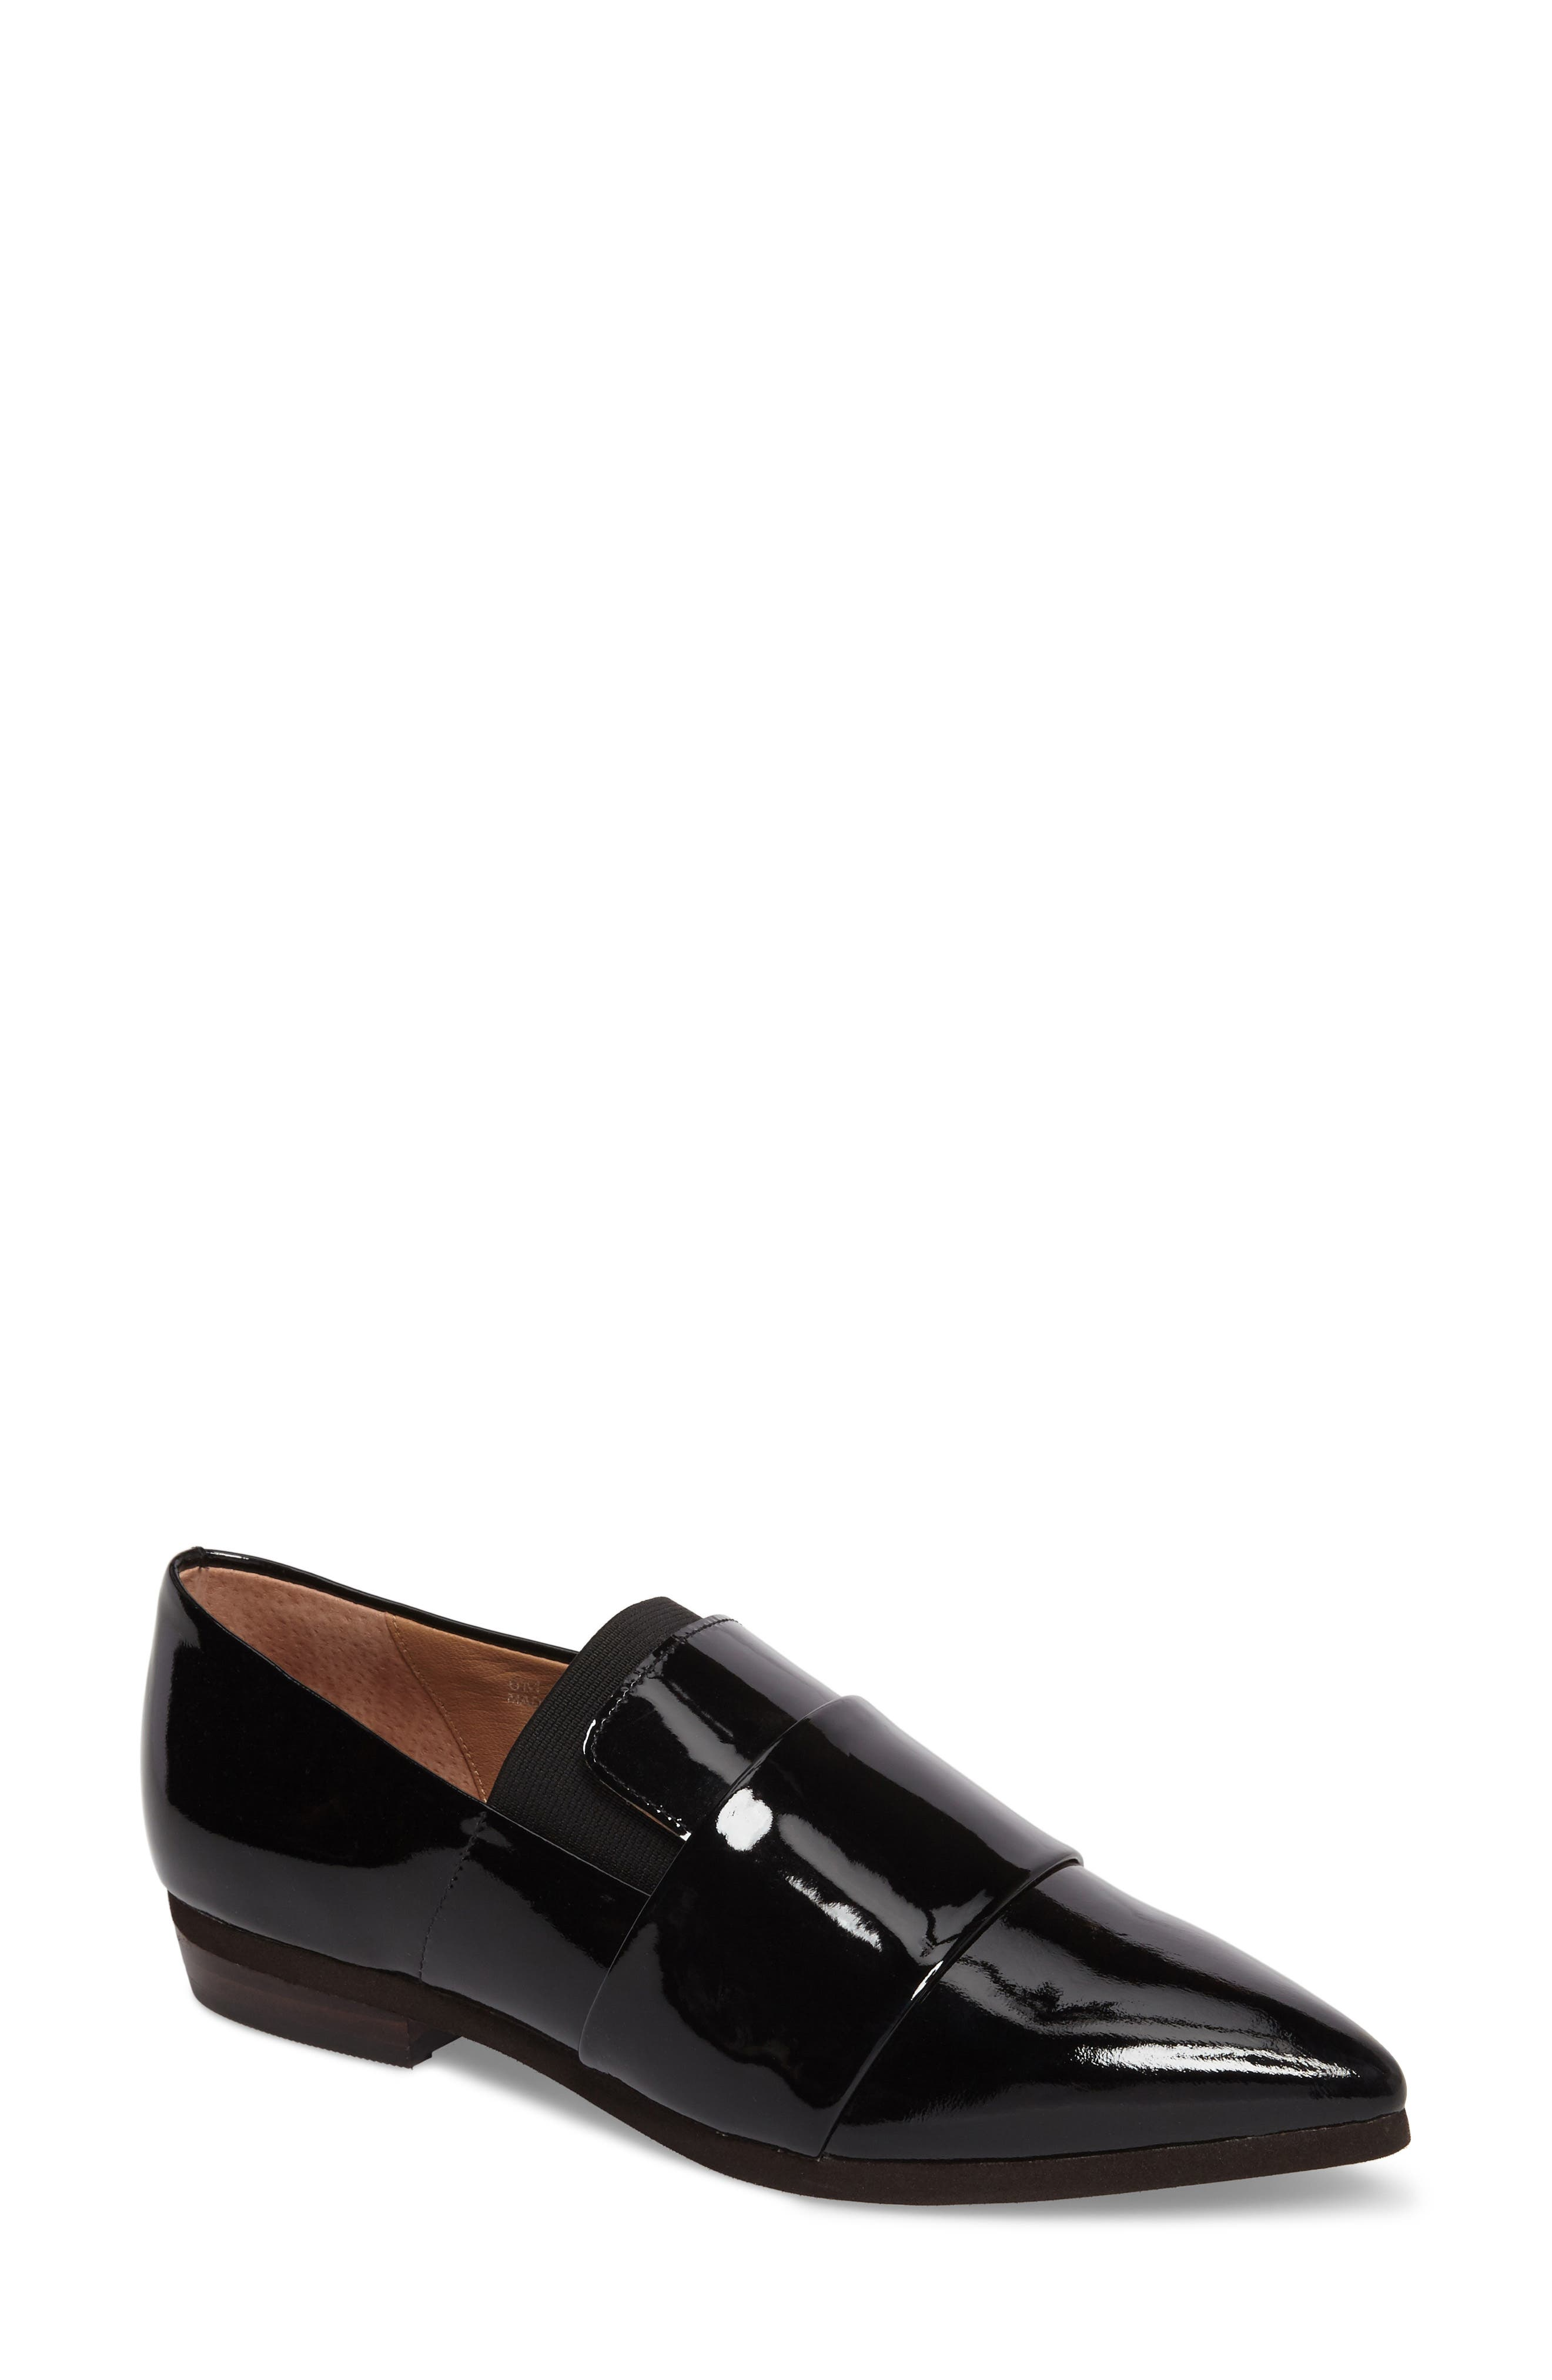 Alternate Image 1 Selected - Linea Paolo Madison Loafer (Women)